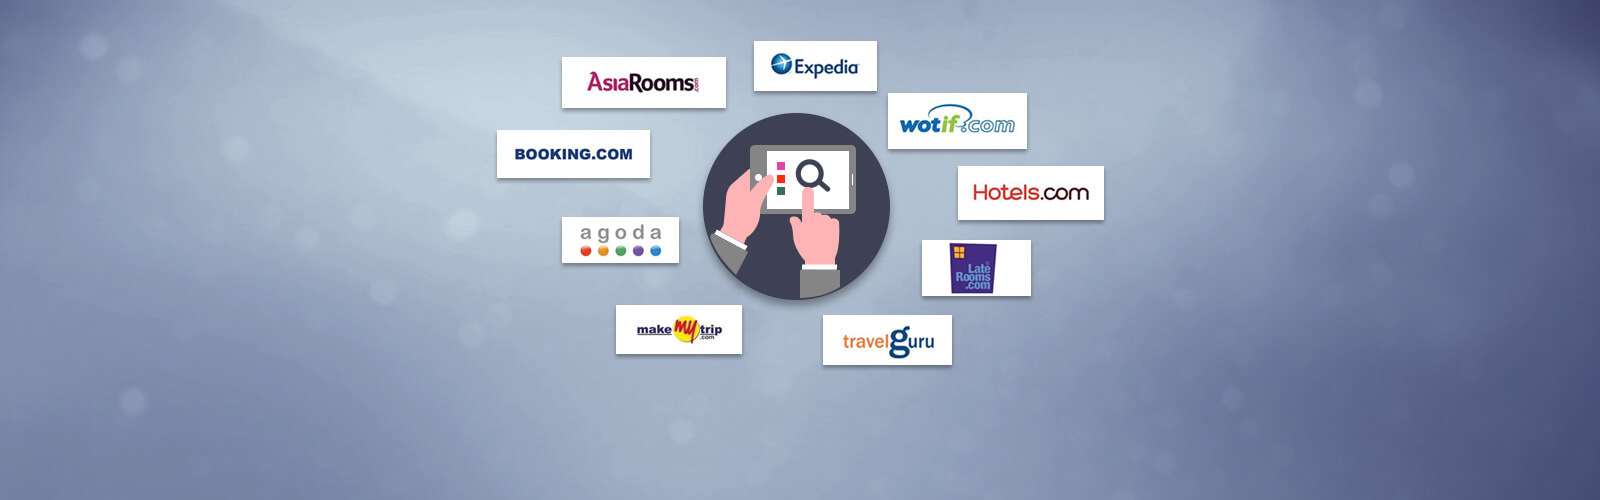 Seamless Integration with Global Booking Channels